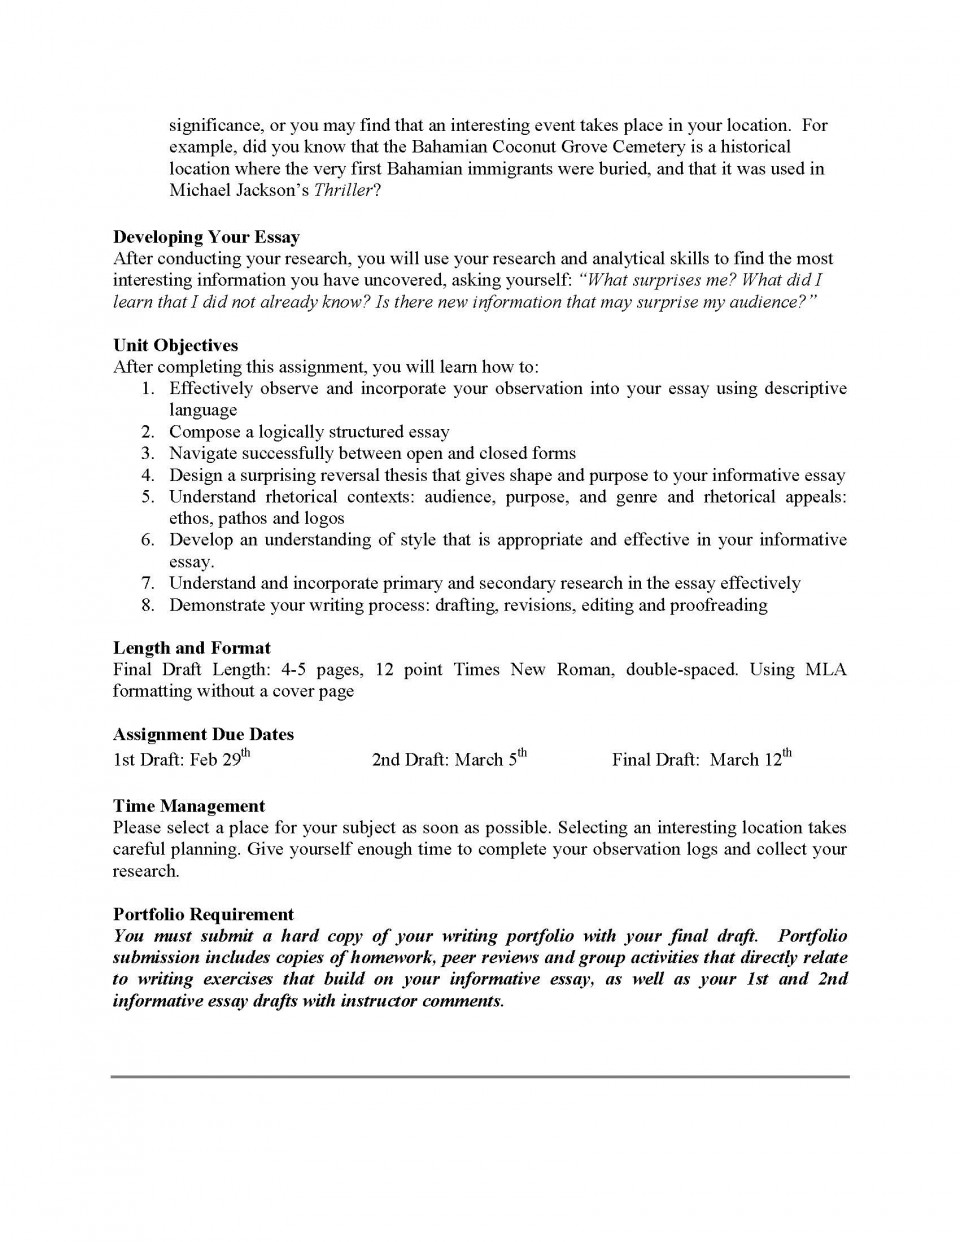 014 Informative Essay Unit Assignment Page 2 Dreaded Graphic Organizer Middle School Rubric 6th Grade Topics 960